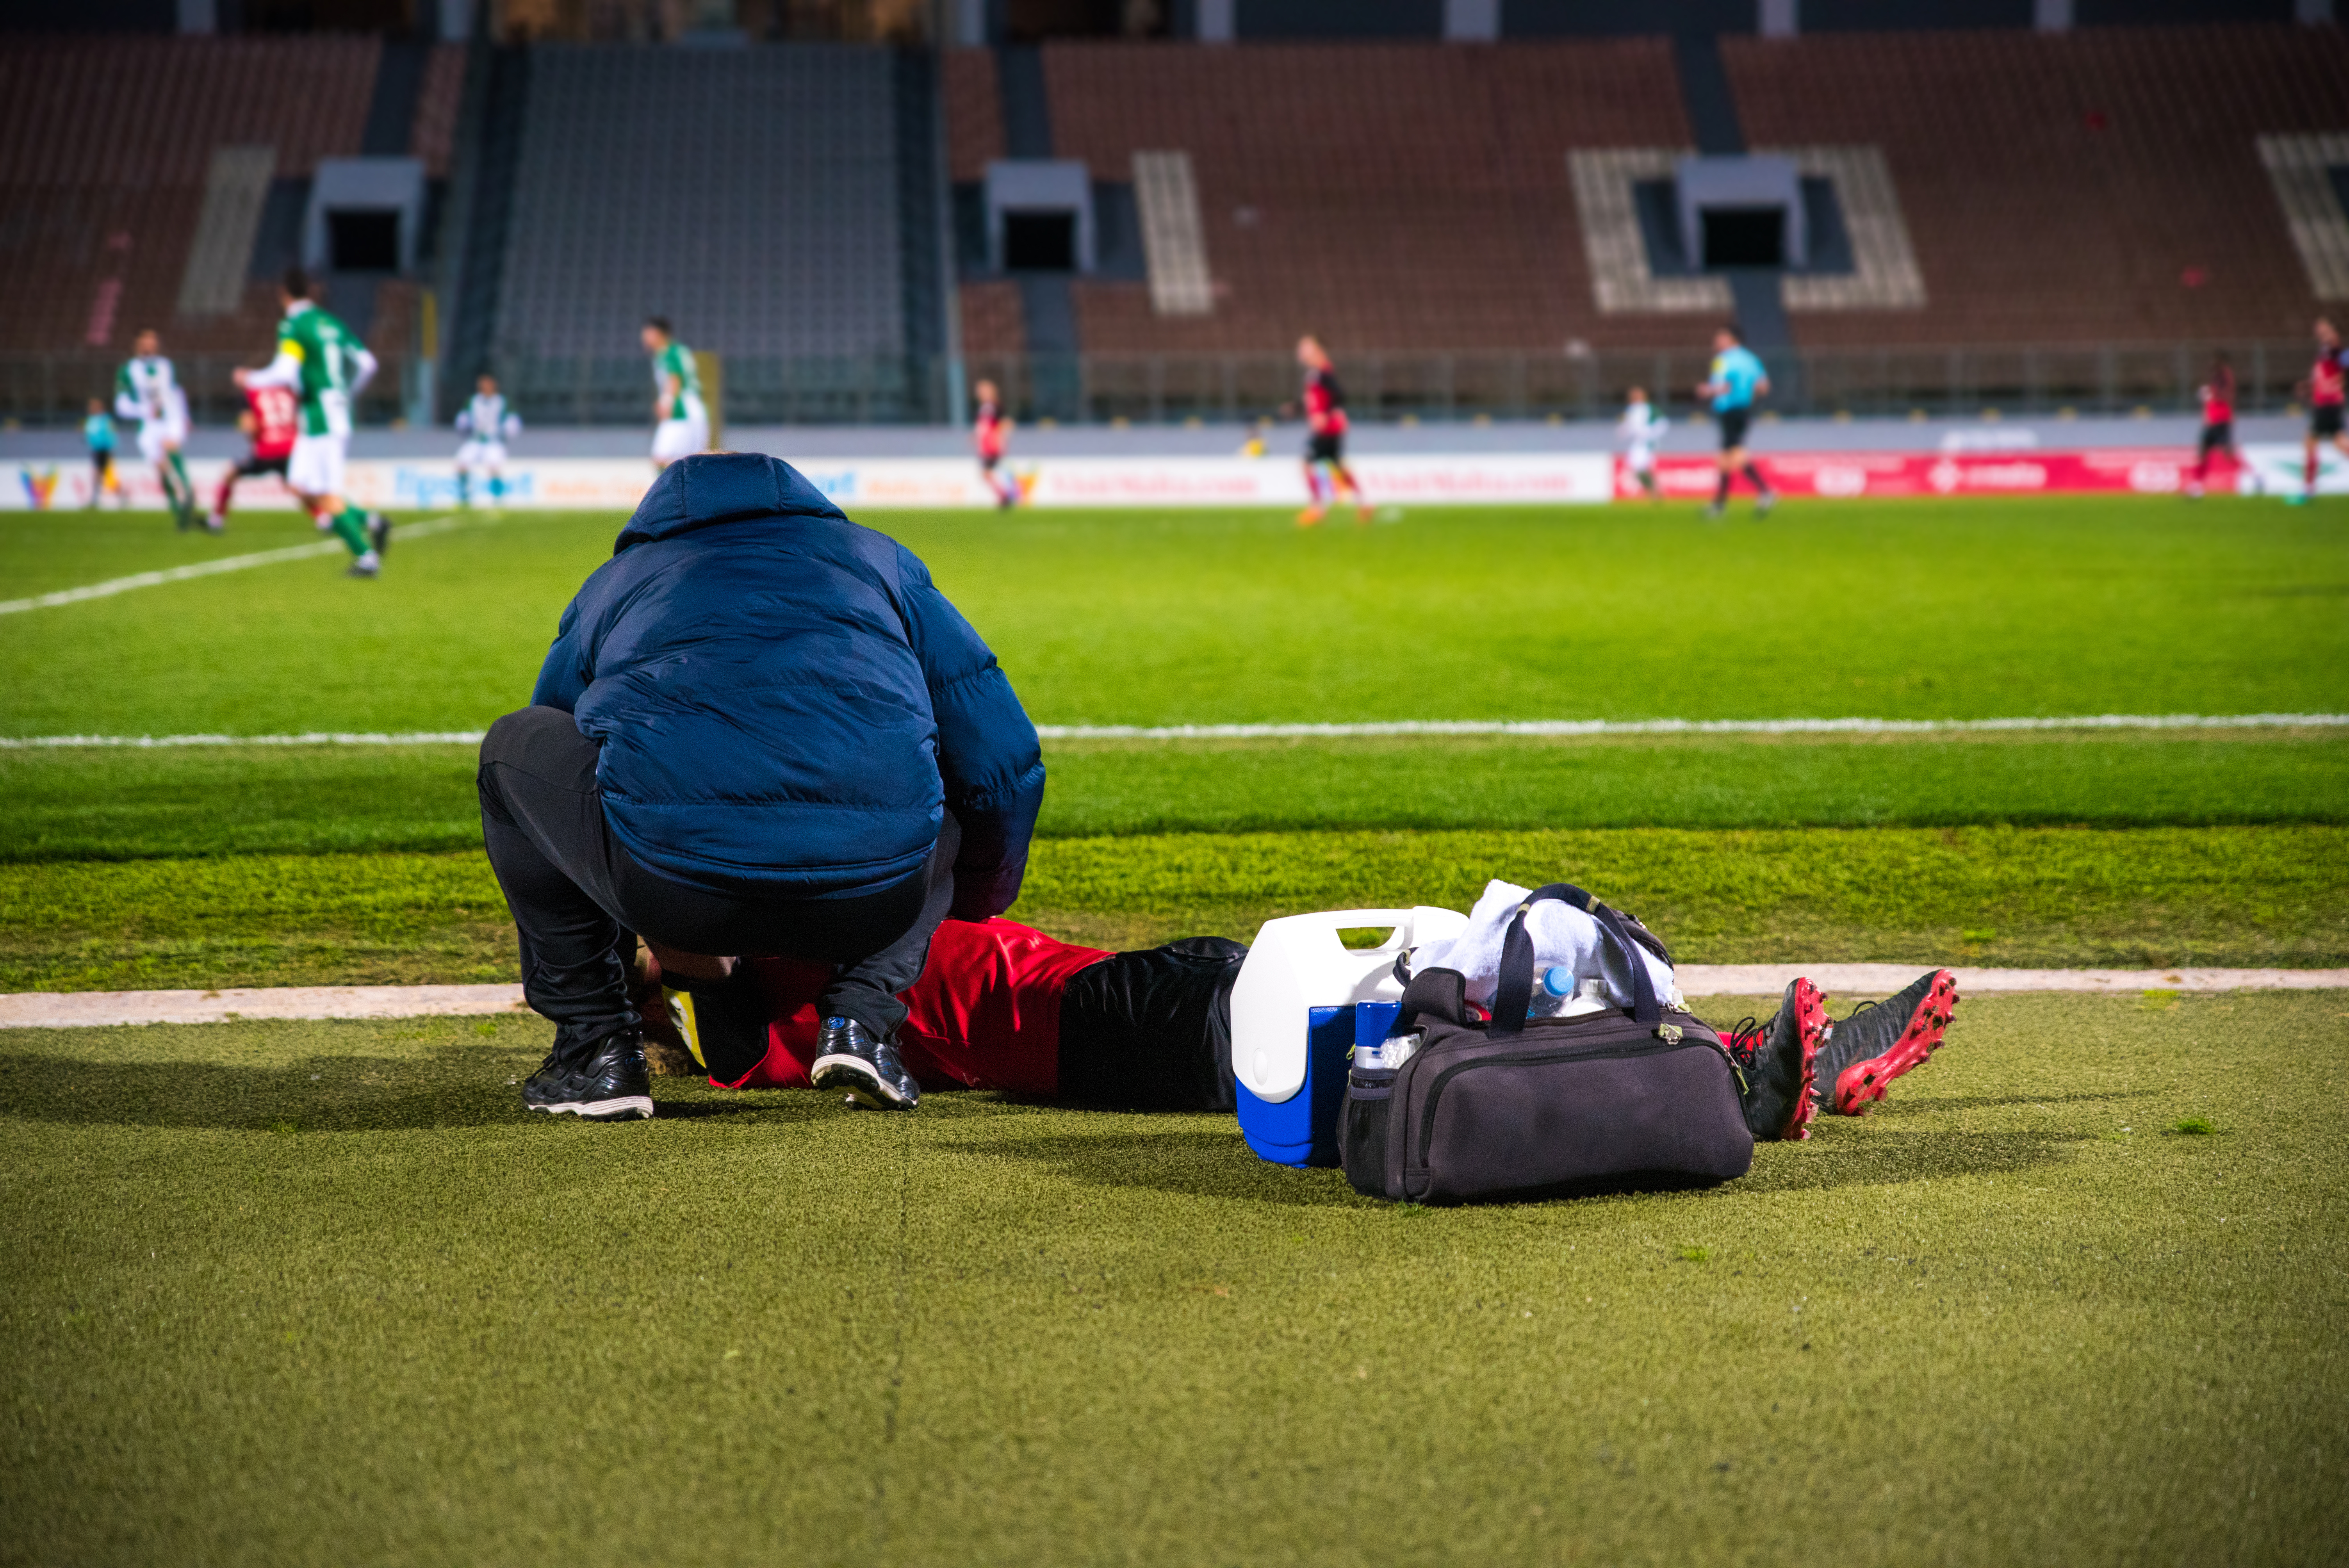 Drugs in football: Addiction and doping in the game